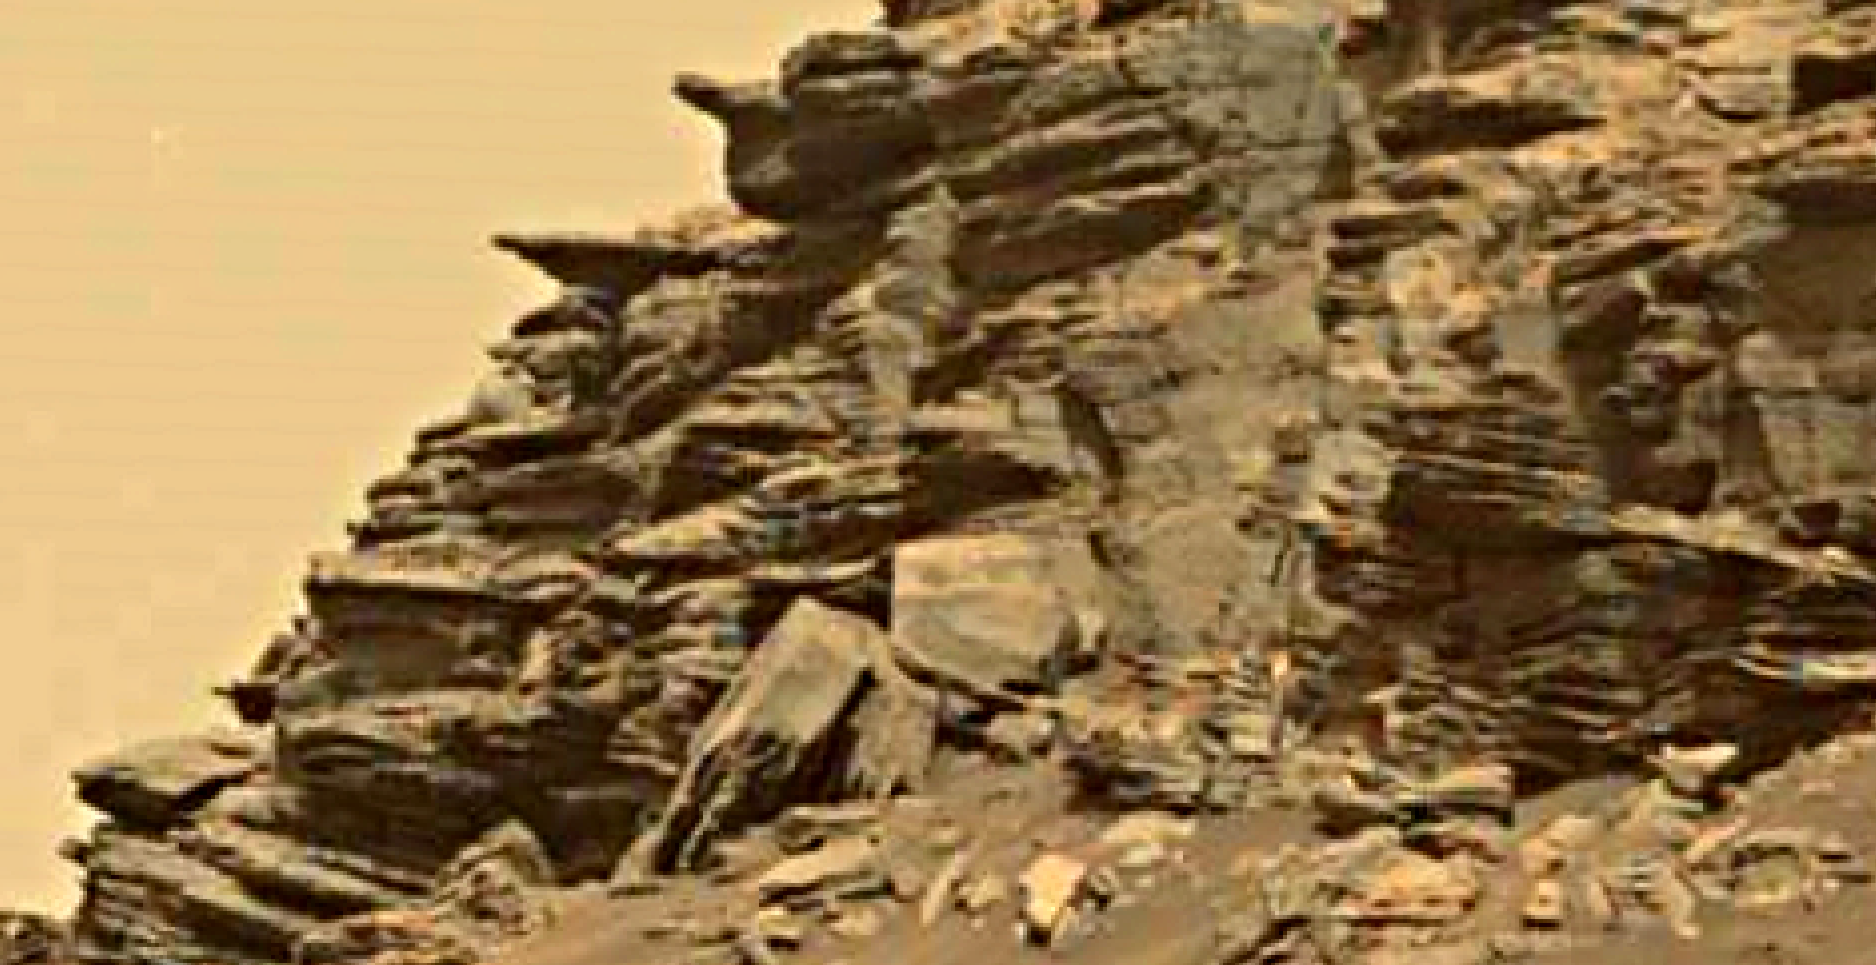 mars-sol-1451-anomaly-artifacts-8-was-life-on-mars